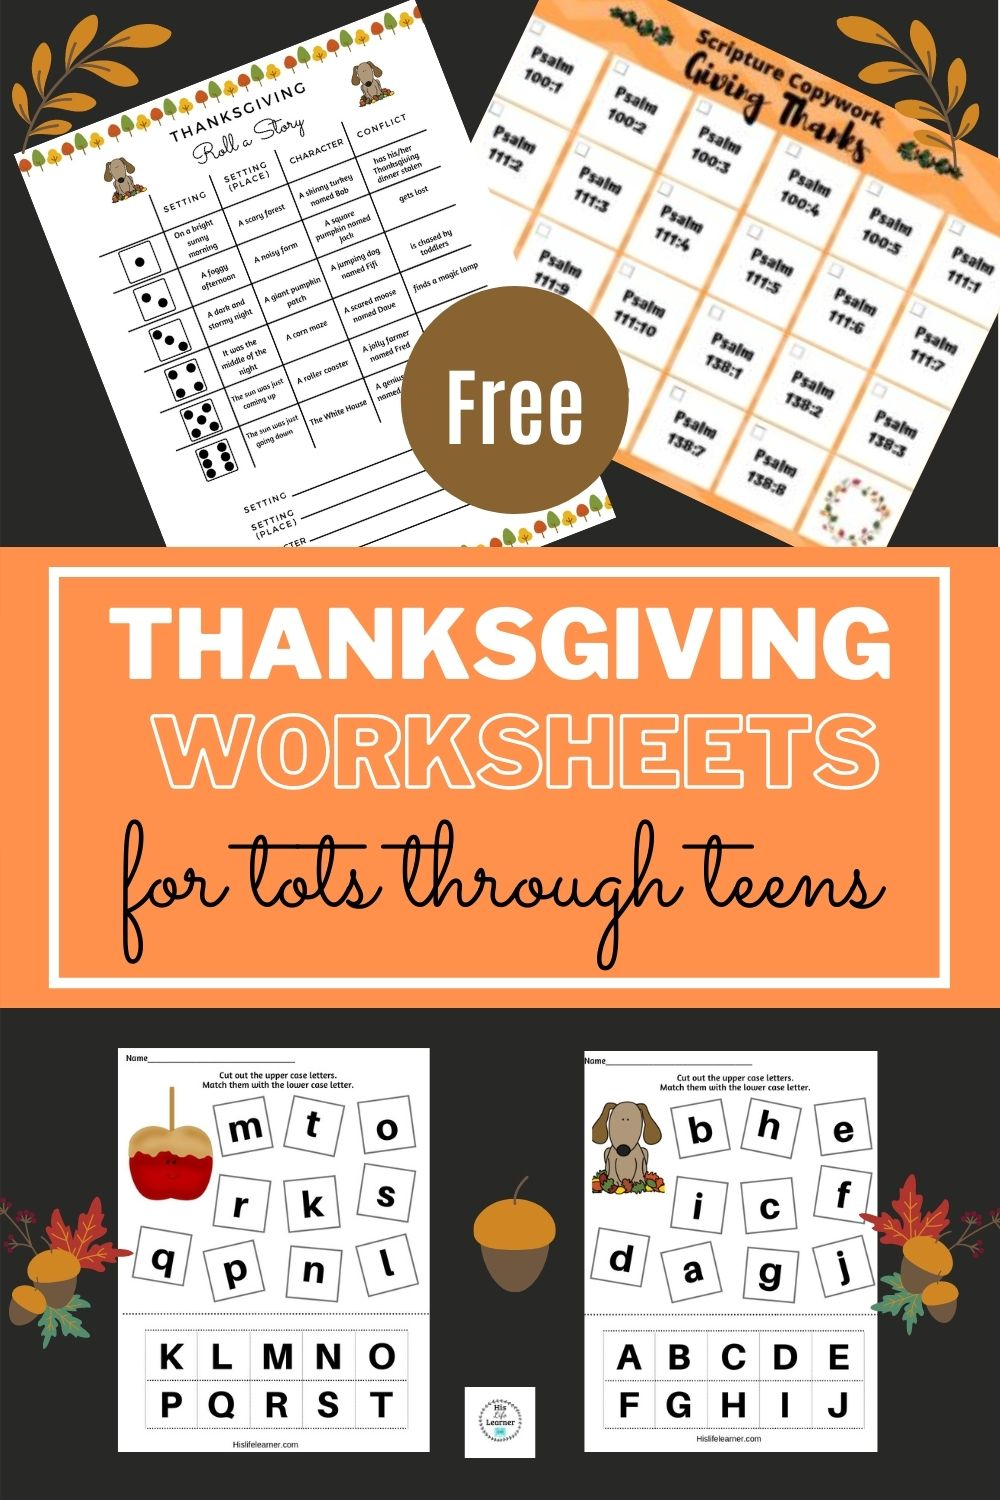 hight resolution of Thanksgiving Worksheets for Tots through Teens - HisLifeLearner.com